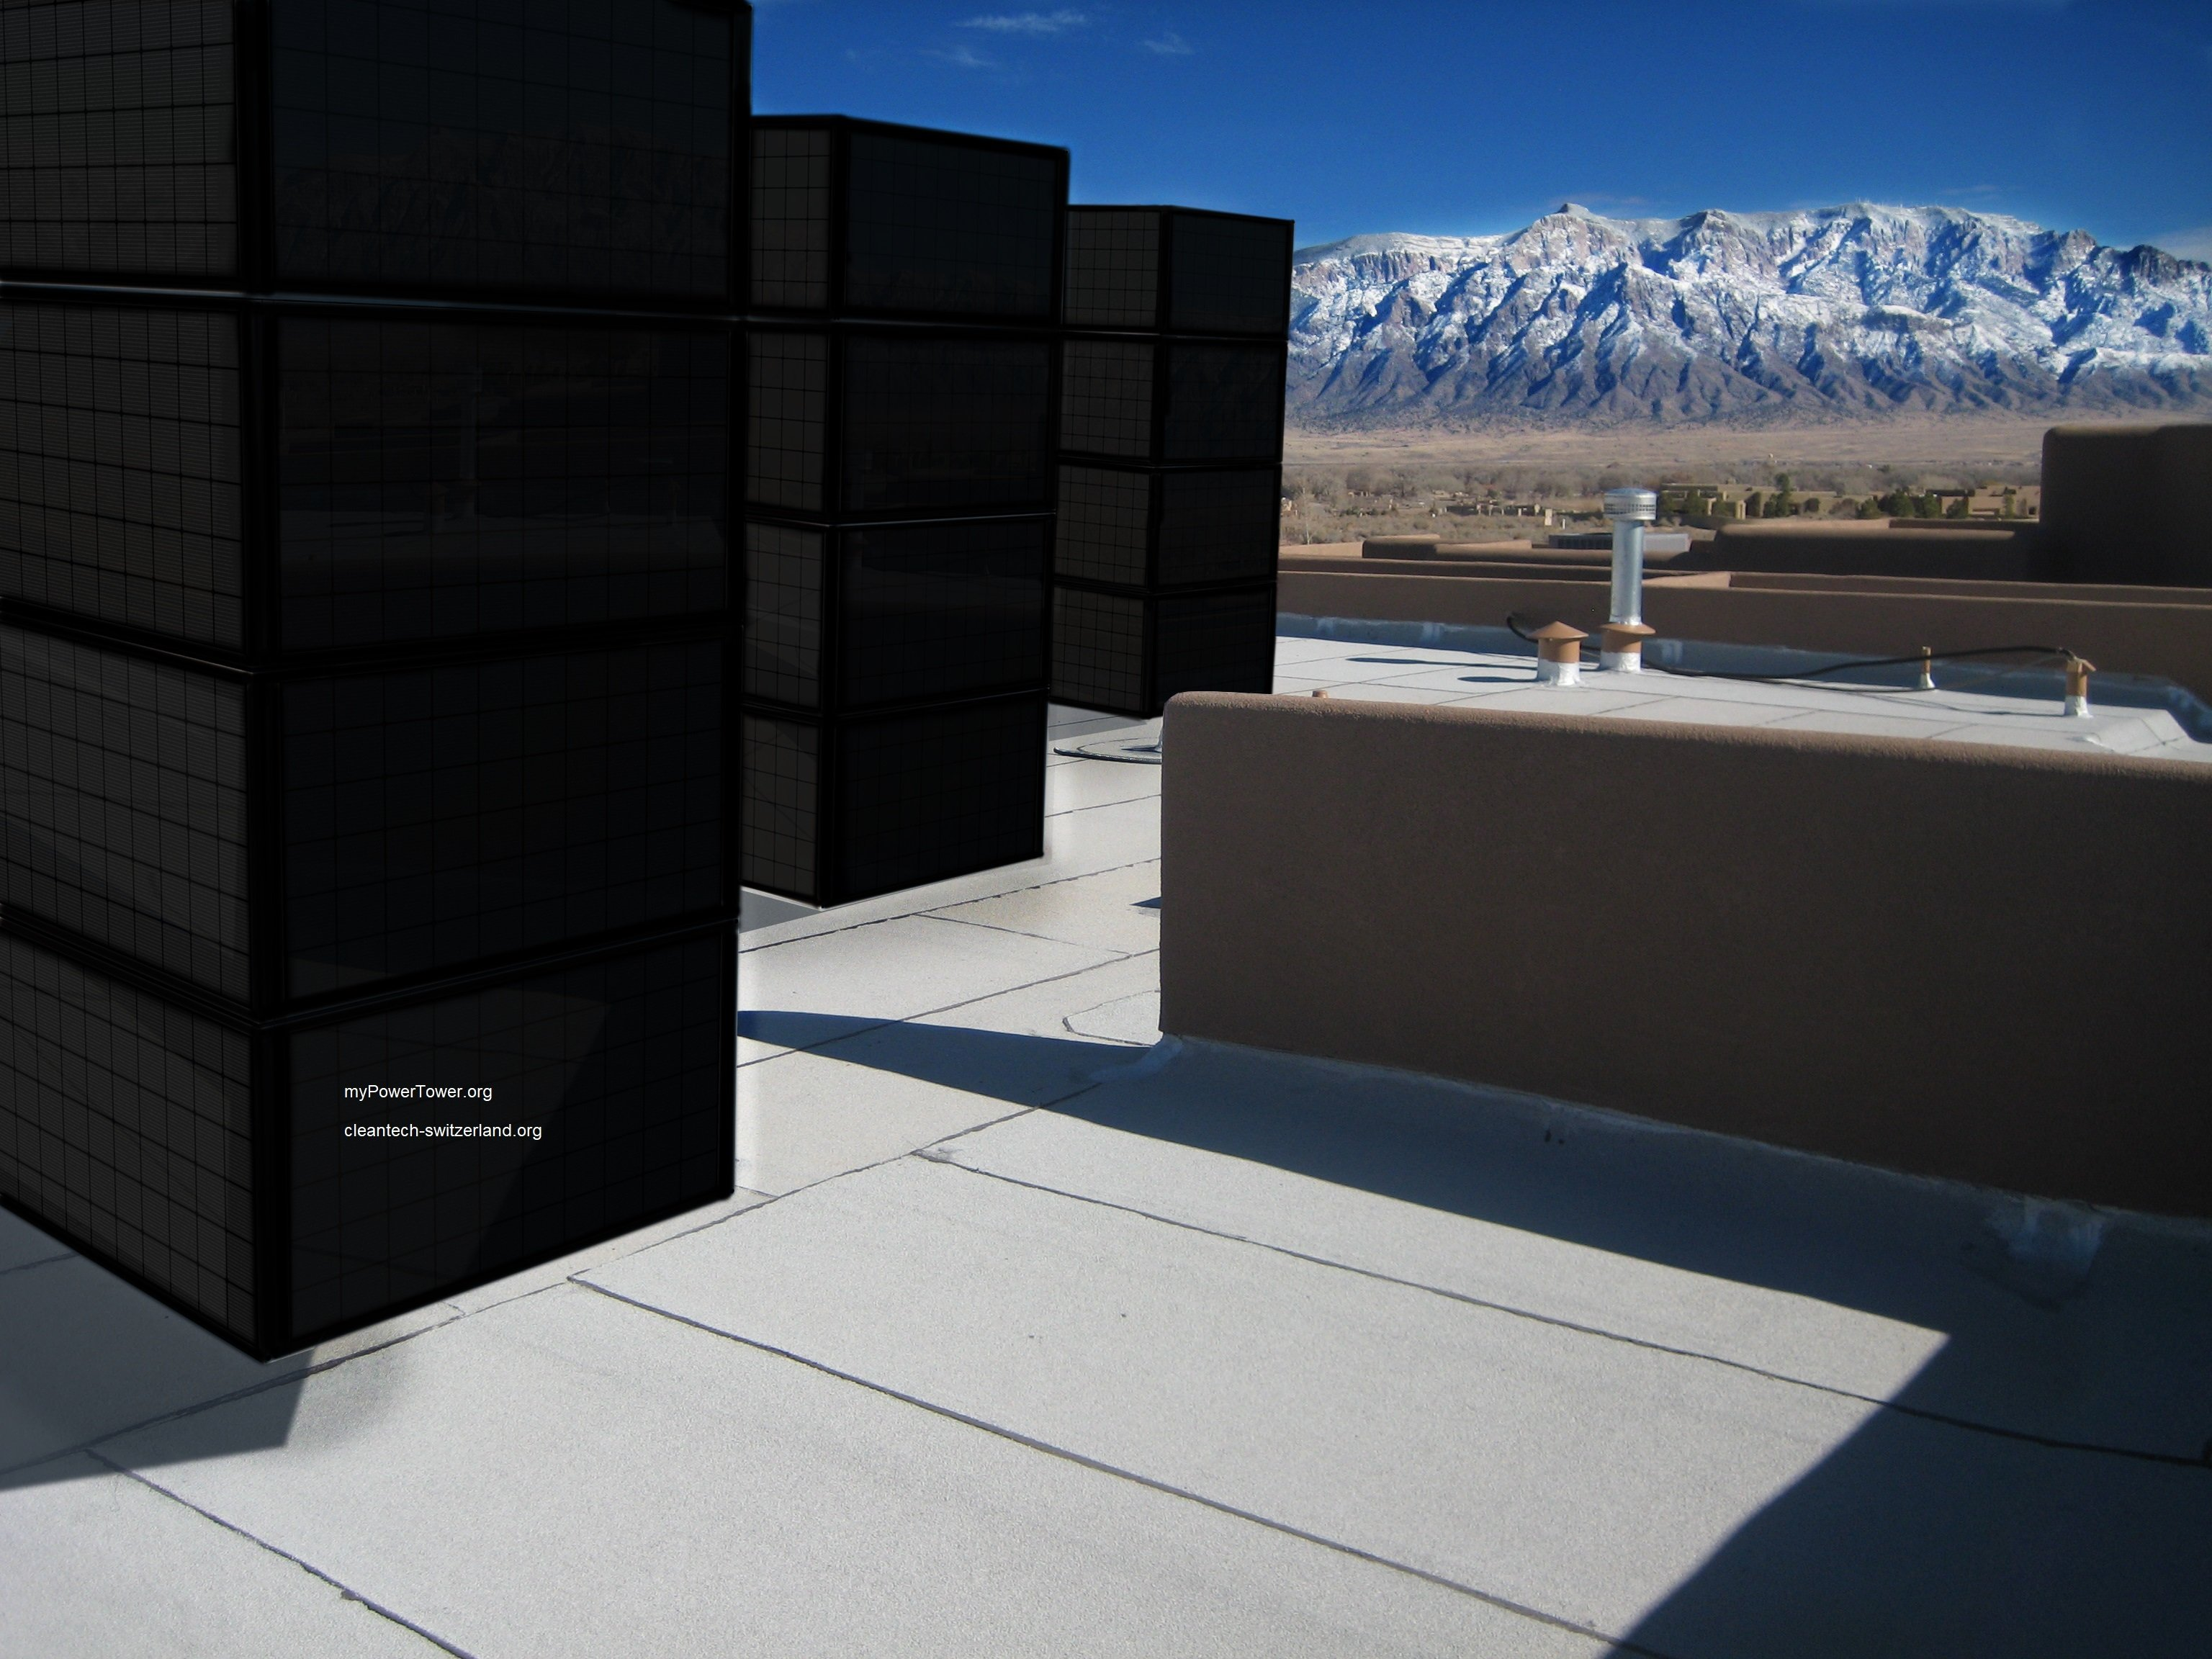 myPowerTower.org by cleantech-shop.org some on the roof of a building with black solarpannels